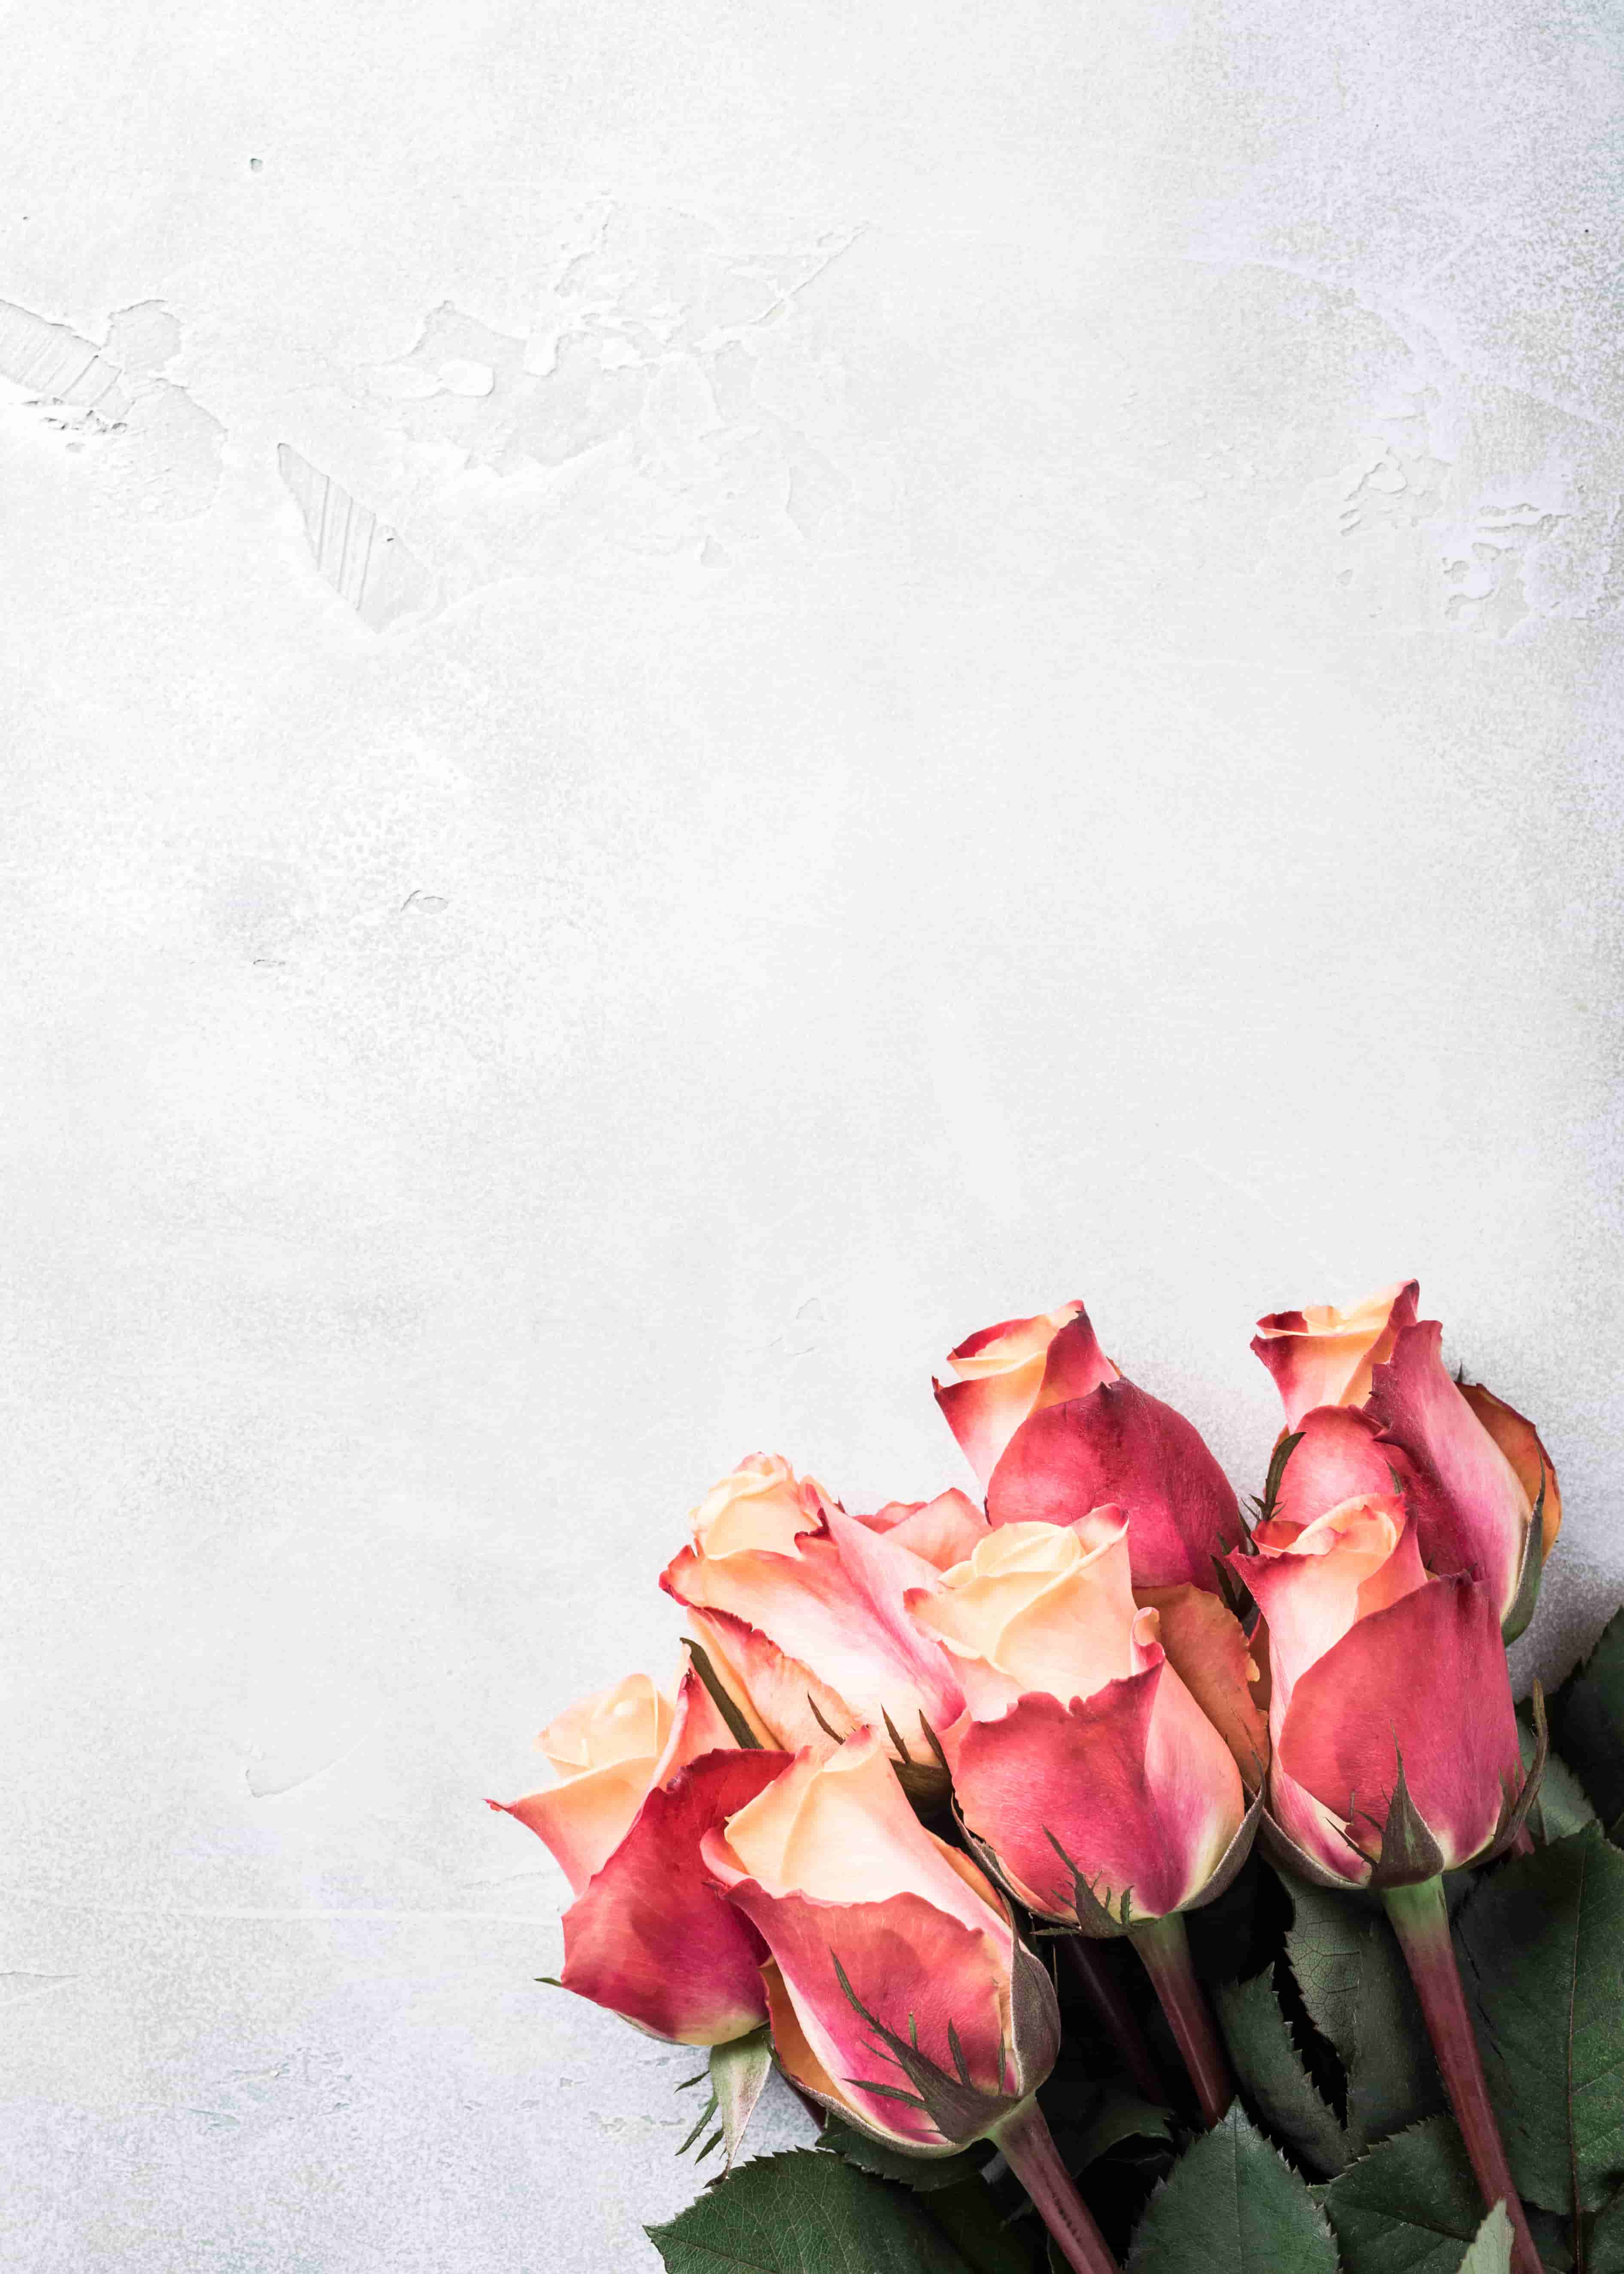 beautiful pink roses image